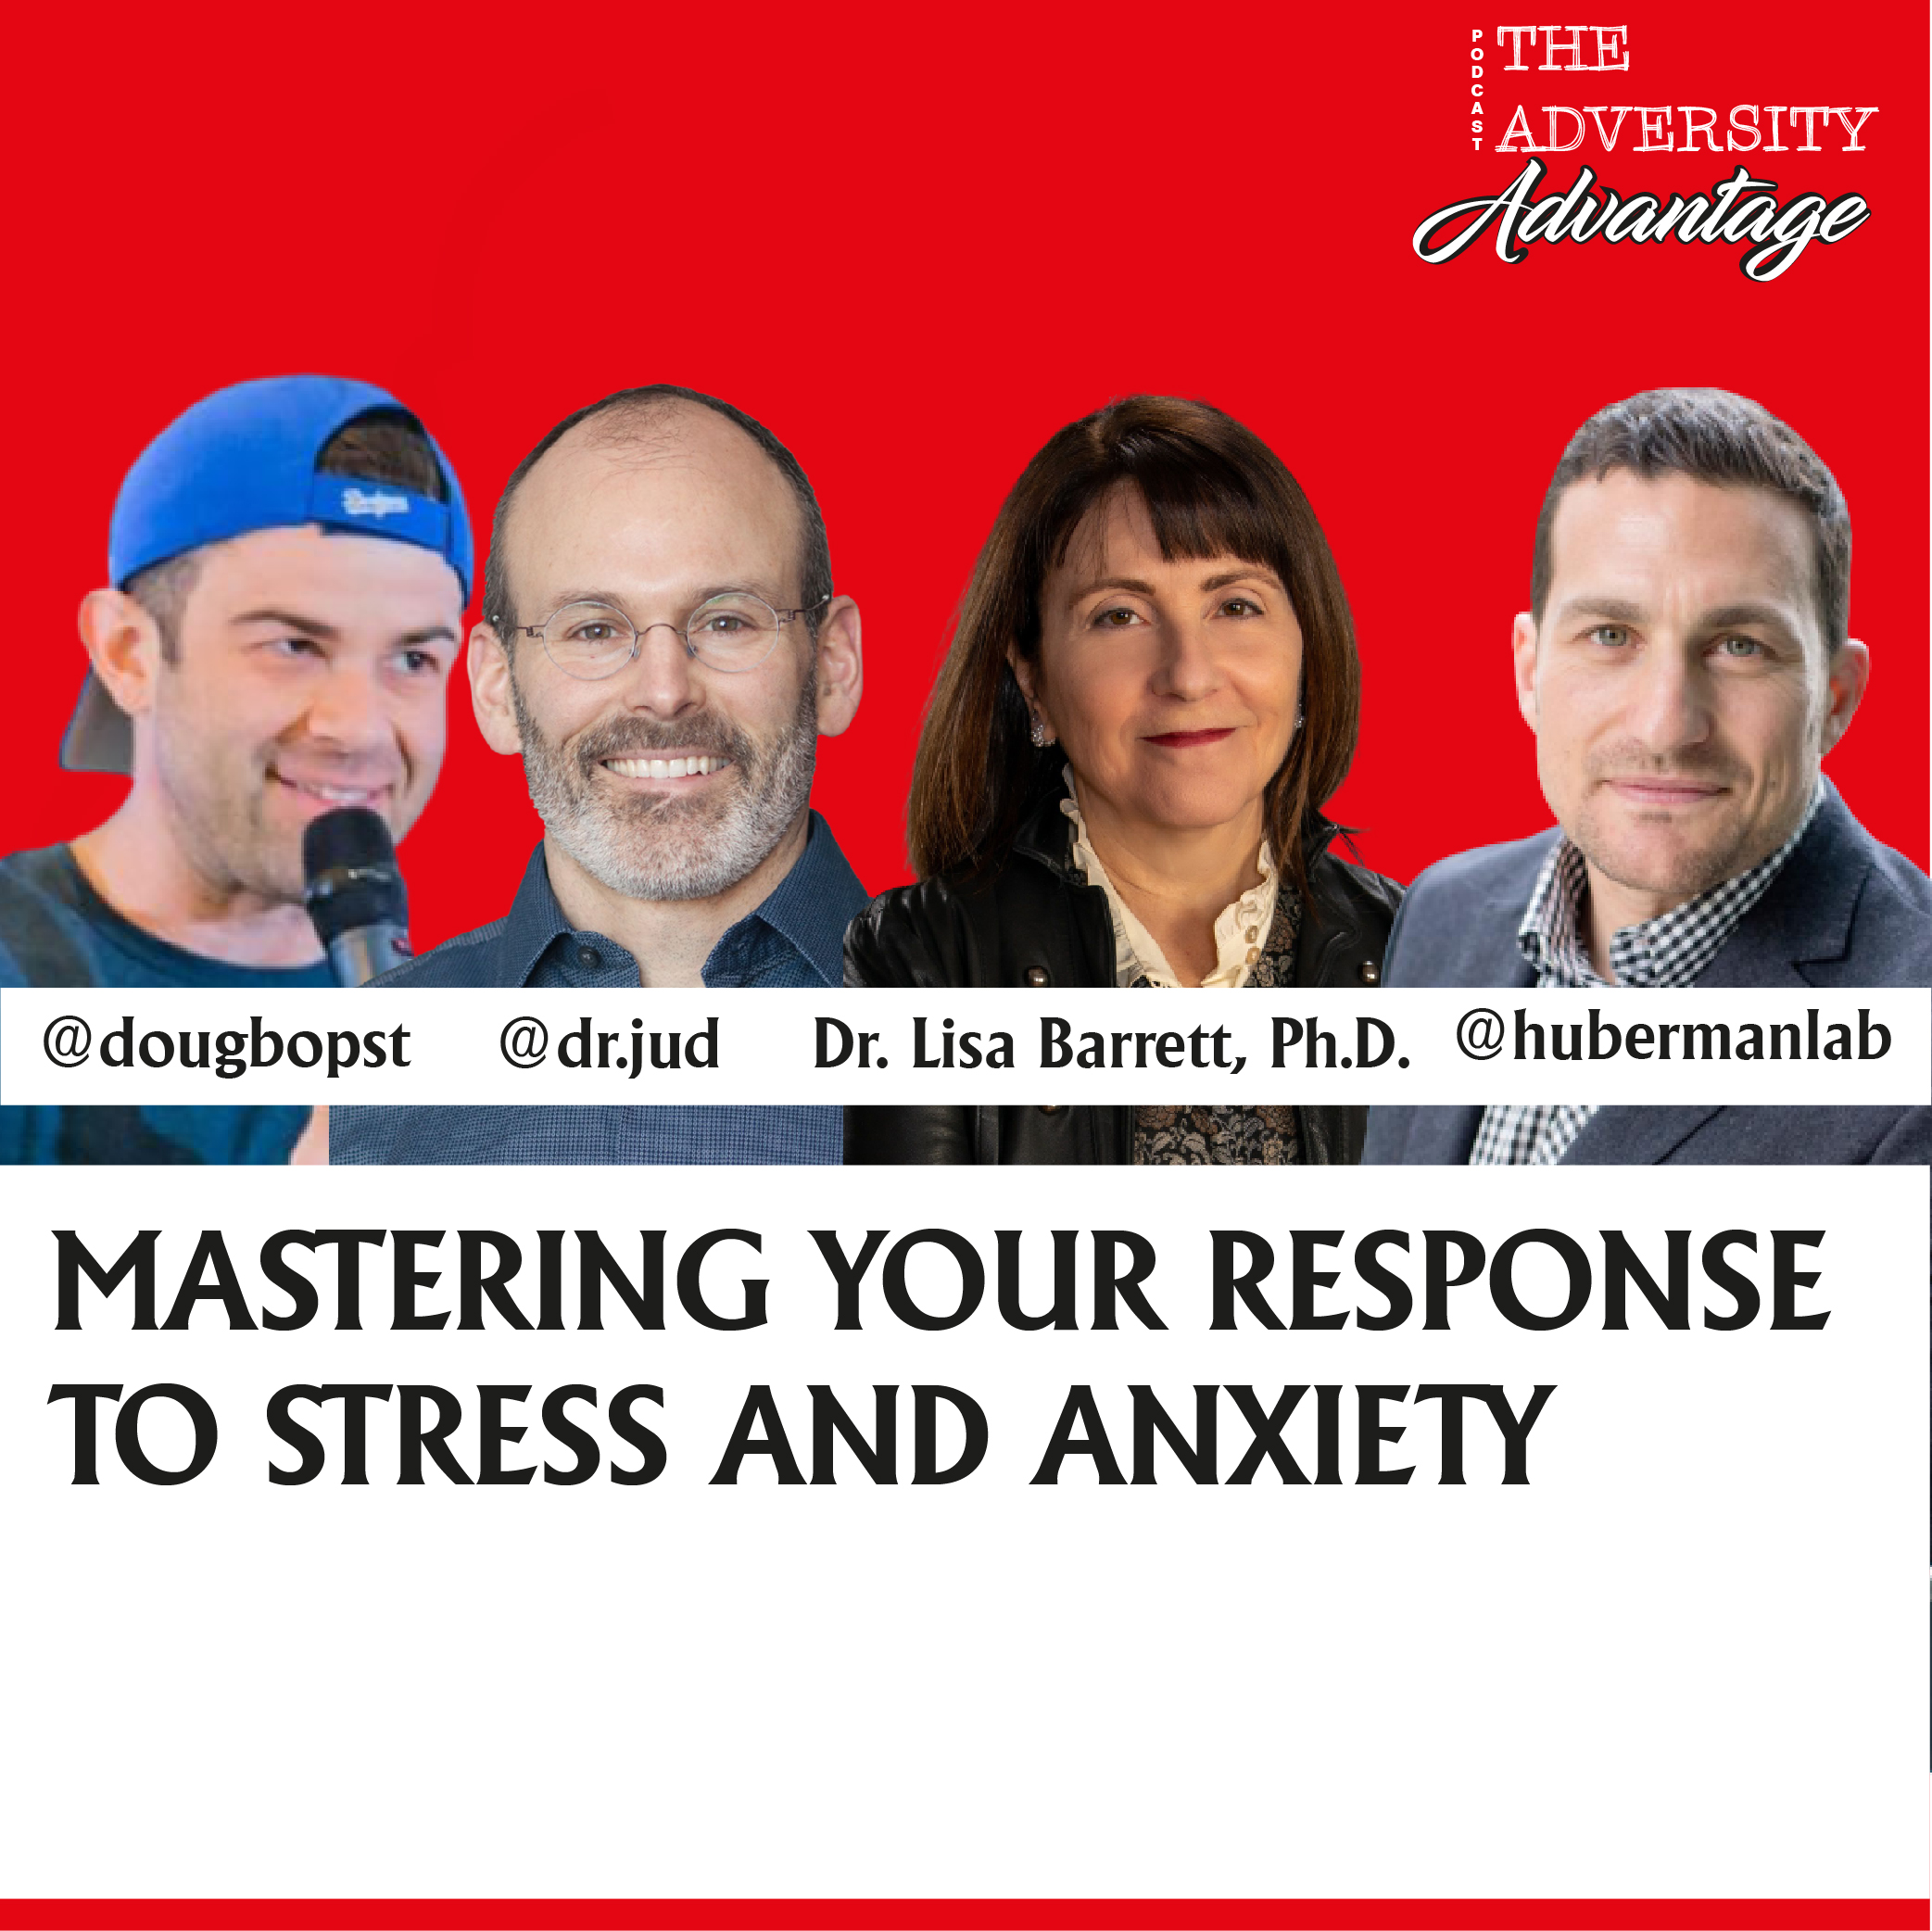 Mastering Your Response to Stress and Anxiety: A Convo With 3 Top Neuroscientists